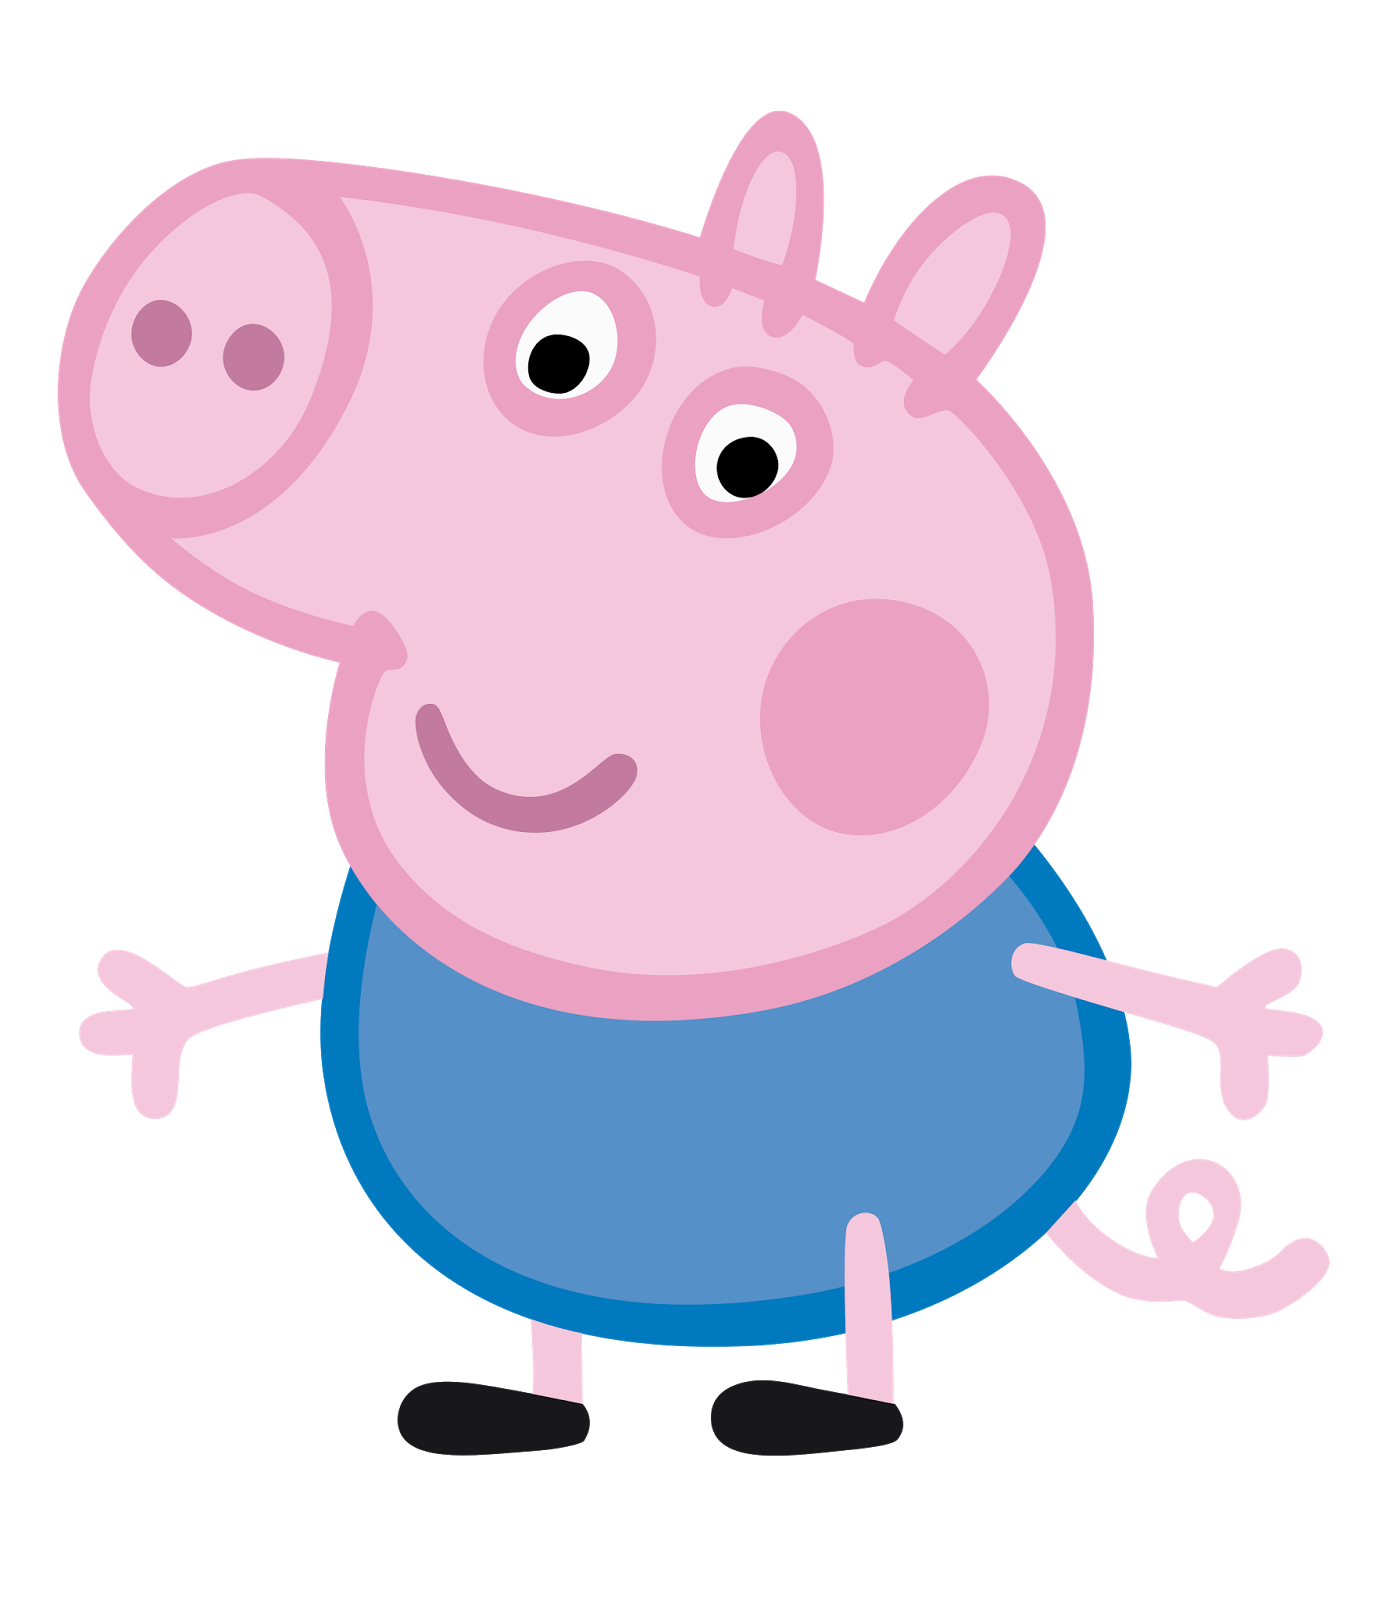 Pig clipart animated. Cartoon characters peppa png